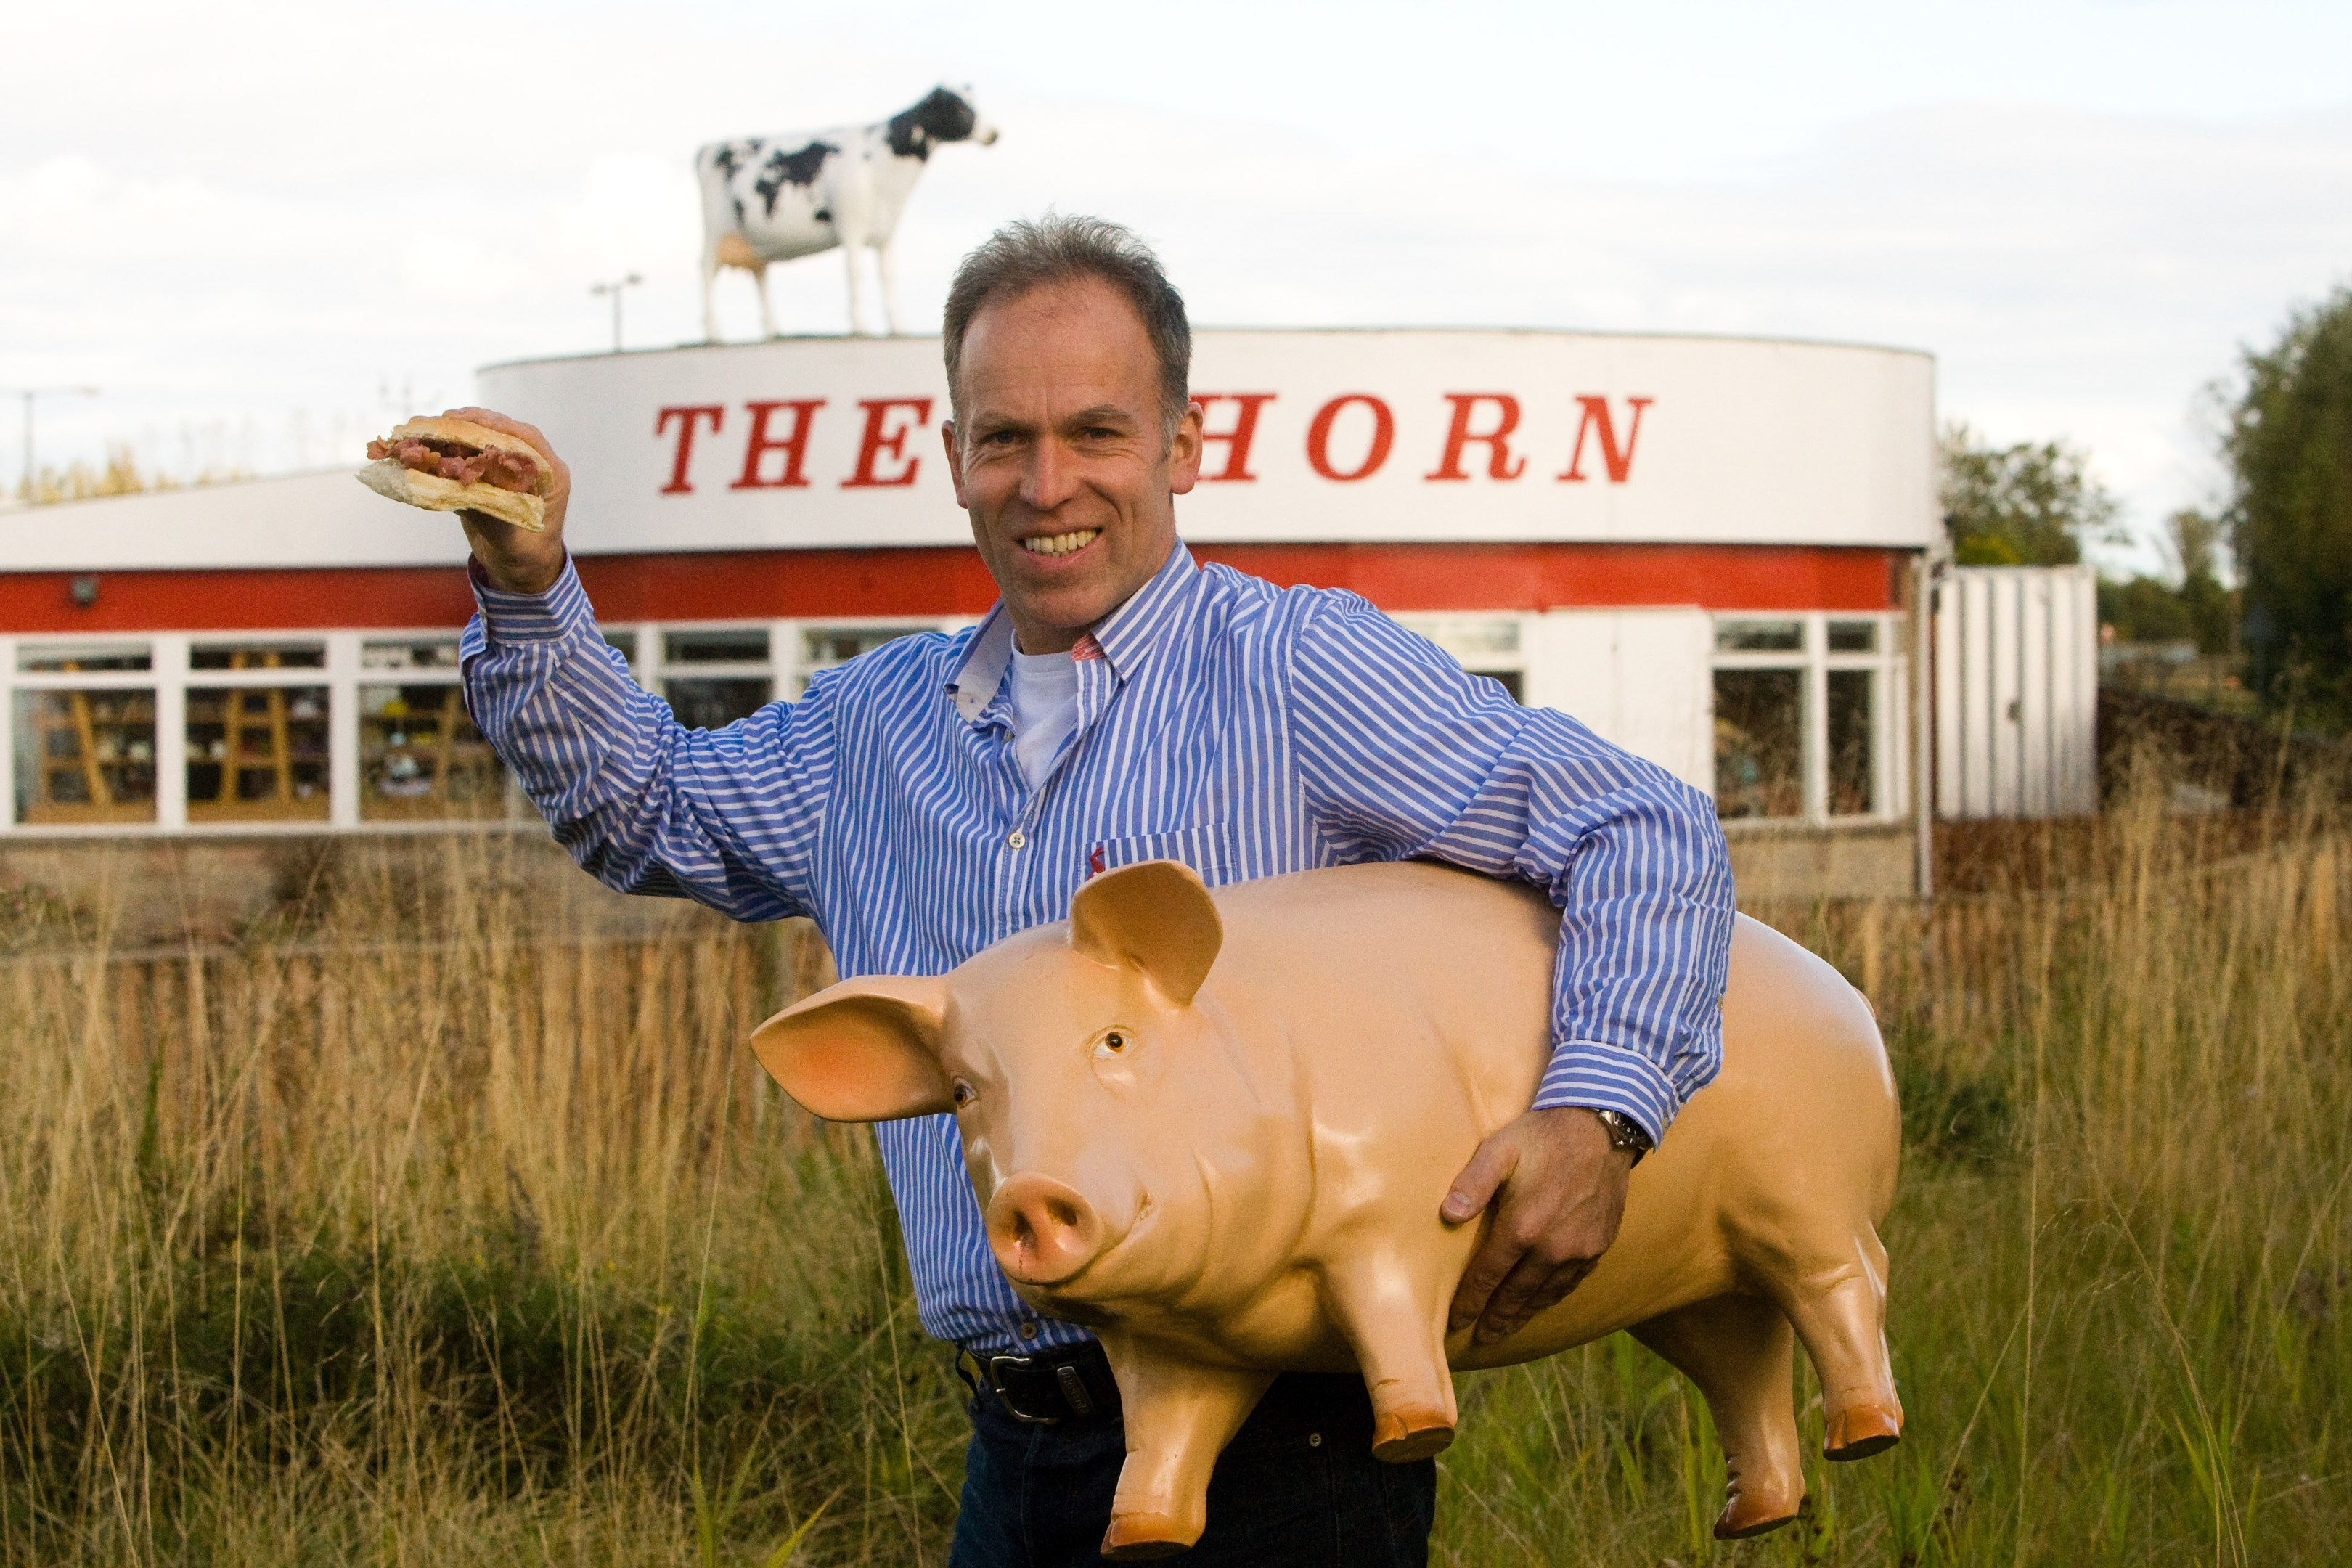 The Horn, A90 by Errol. Best Bacon Buttie in the World. The cafe was voted Best Bacon Buttie by website users. Pictured, owner Kenny Farquharson holding a prop pig he made (along with the famous cow on top of the building).